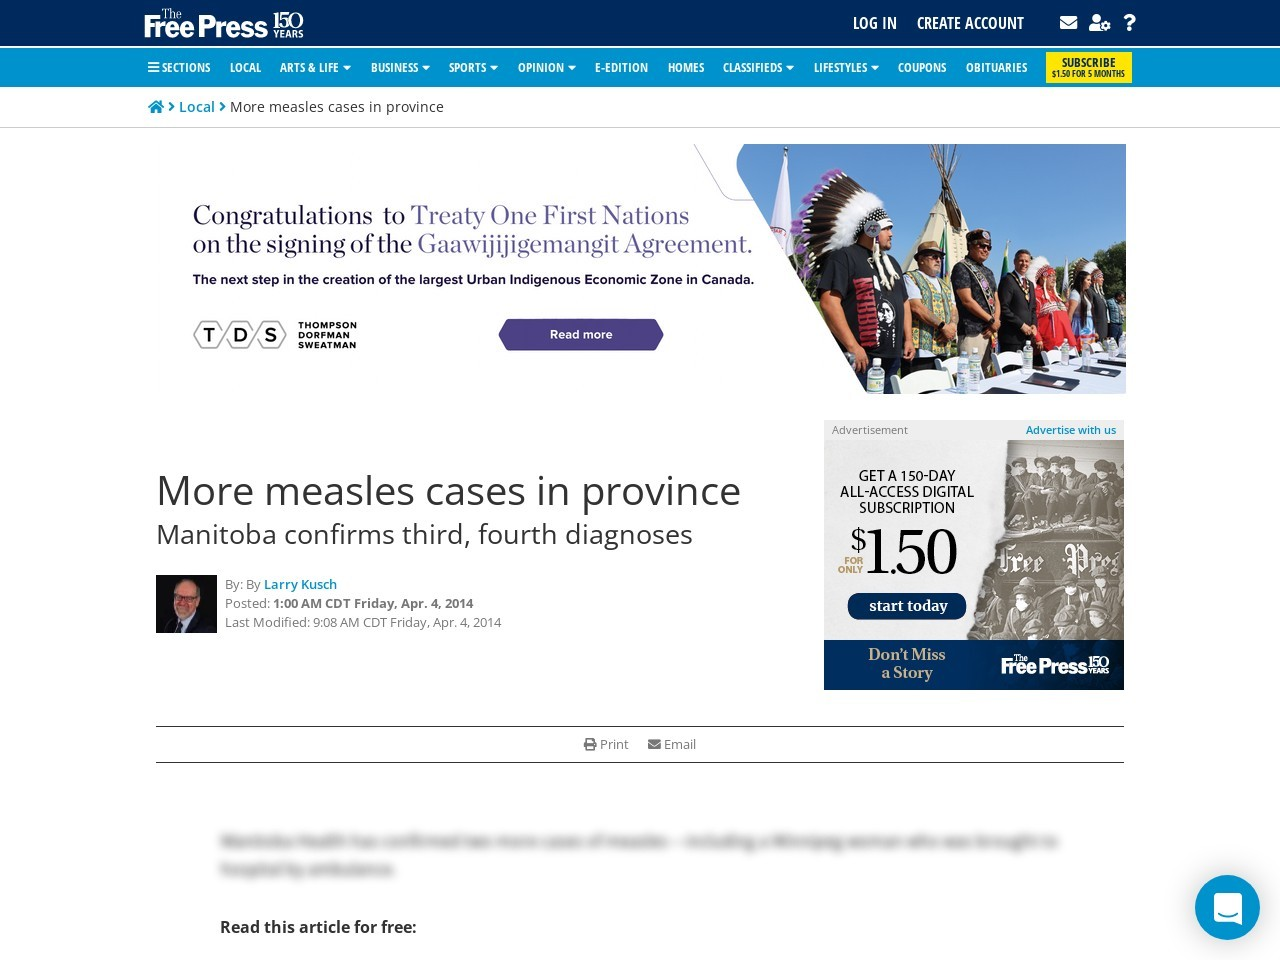 More measles cases in province